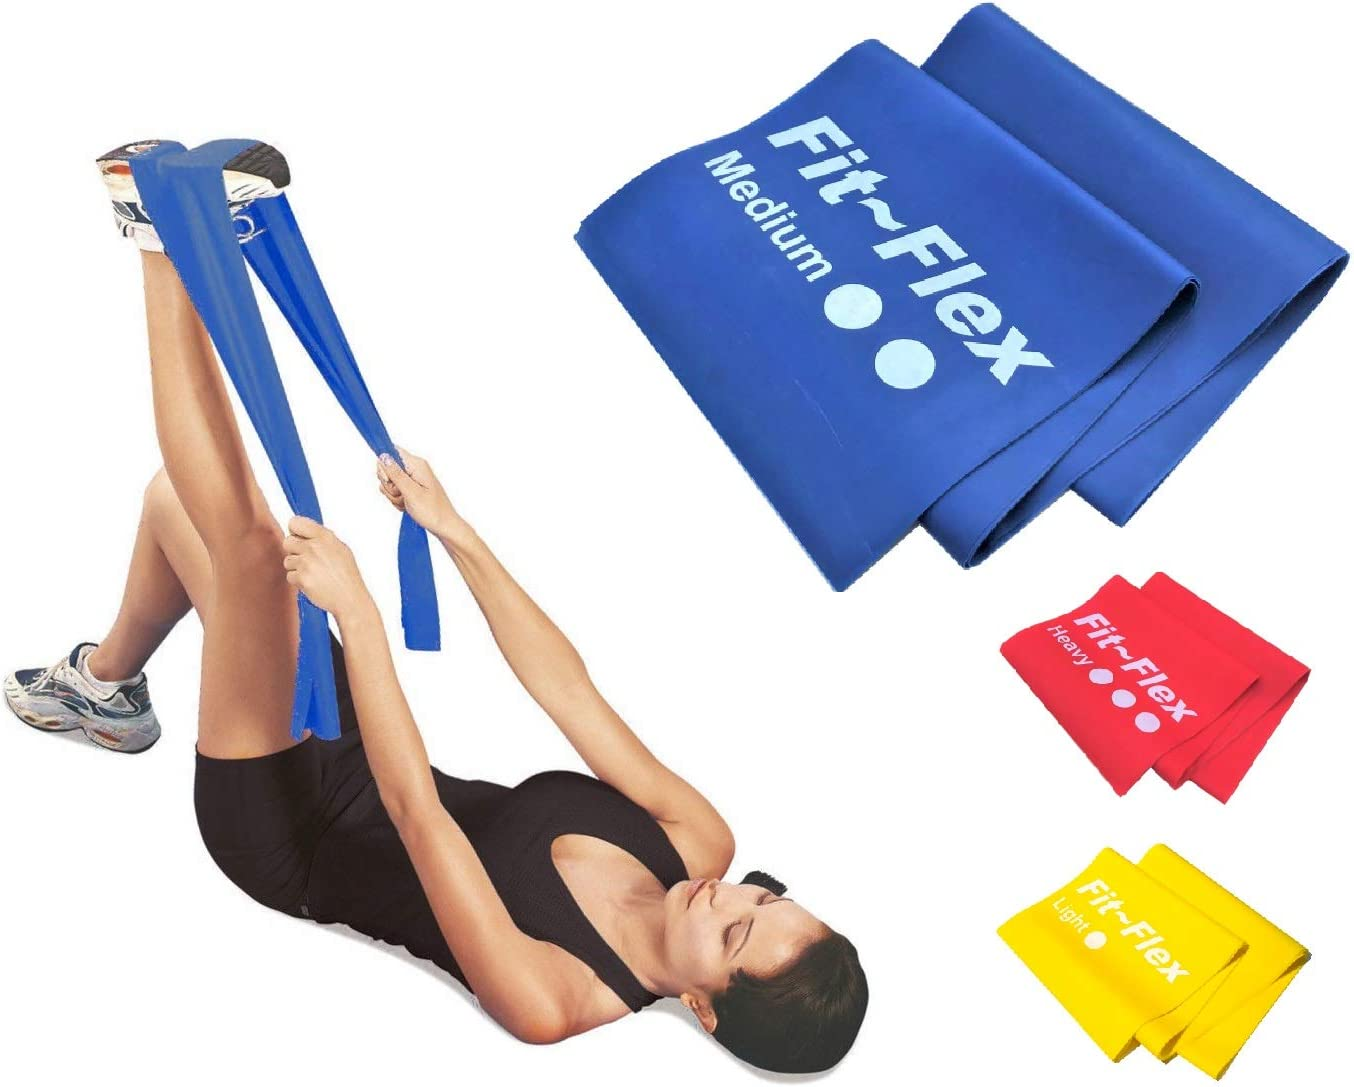 Blue Resist-a-Band By the Foot Therapy Resistance Exercise Blue Theraband